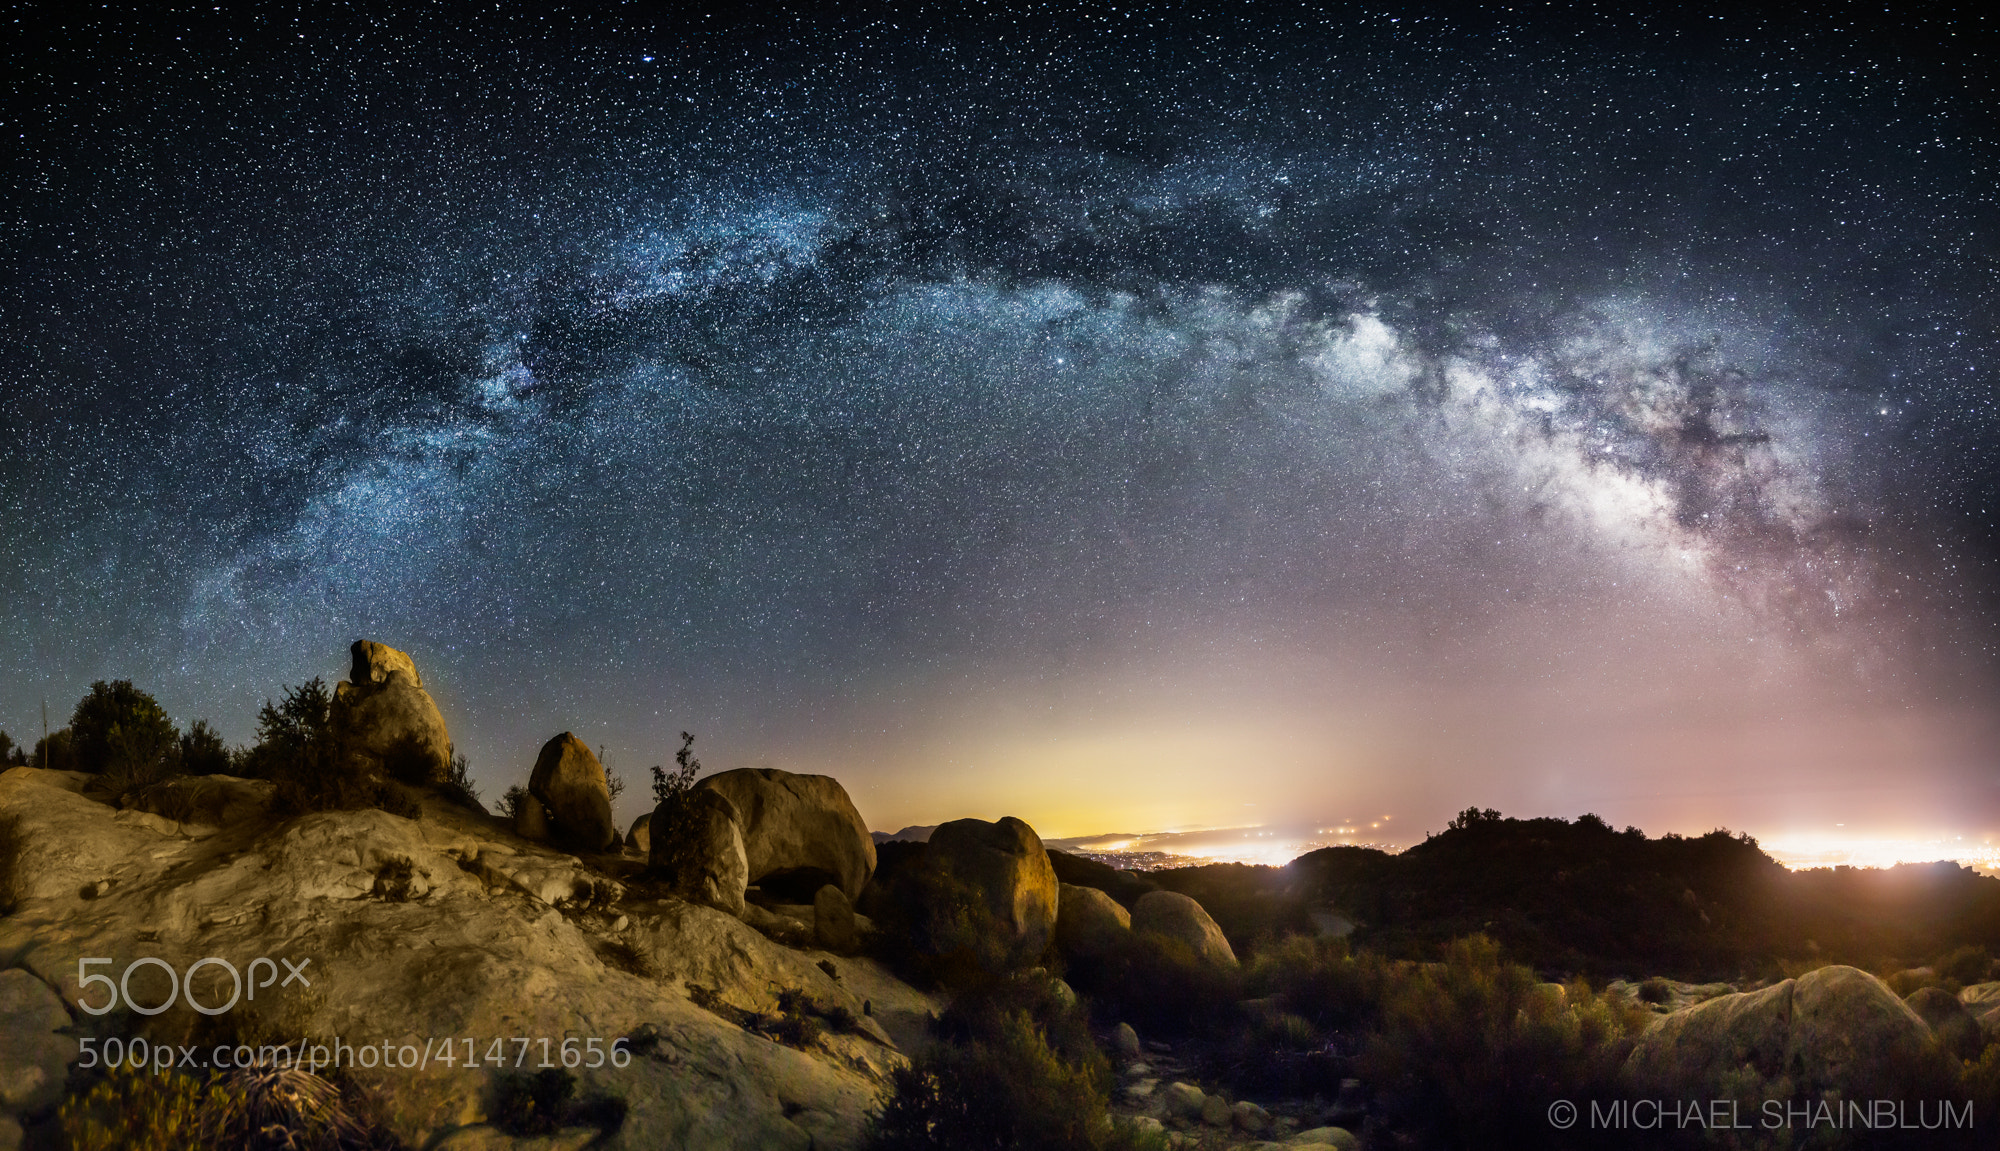 Photograph The Galaxy Over Lizards Mouth by Michael Shainblum on 500px